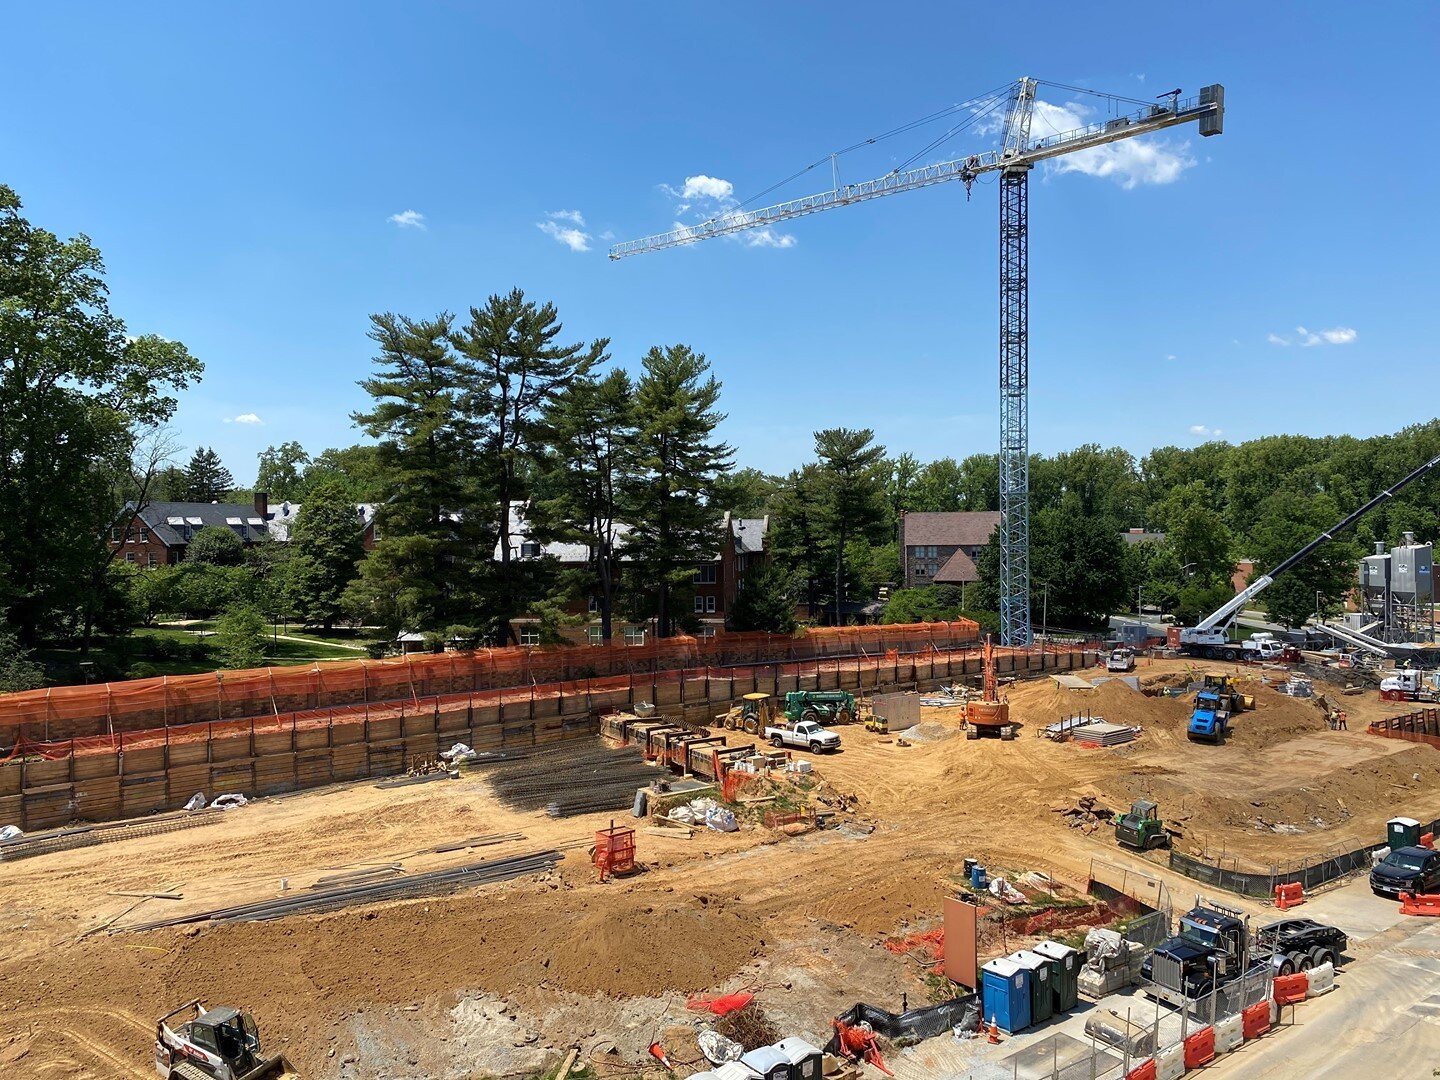 """This image spotlights the first of two tower cranes that will be erected on the #NIH UVPPG project by Miller & Long Concrete. The tower crane is 218'-0"""" tall with a hook reach of 219'-0"""". This crane is located at the NW corner of the project and the crane pad is a 4'6"""" thick mat supported by four auger pressure grout piles installed by Berkel & Company. #BuildSomething #Construction"""